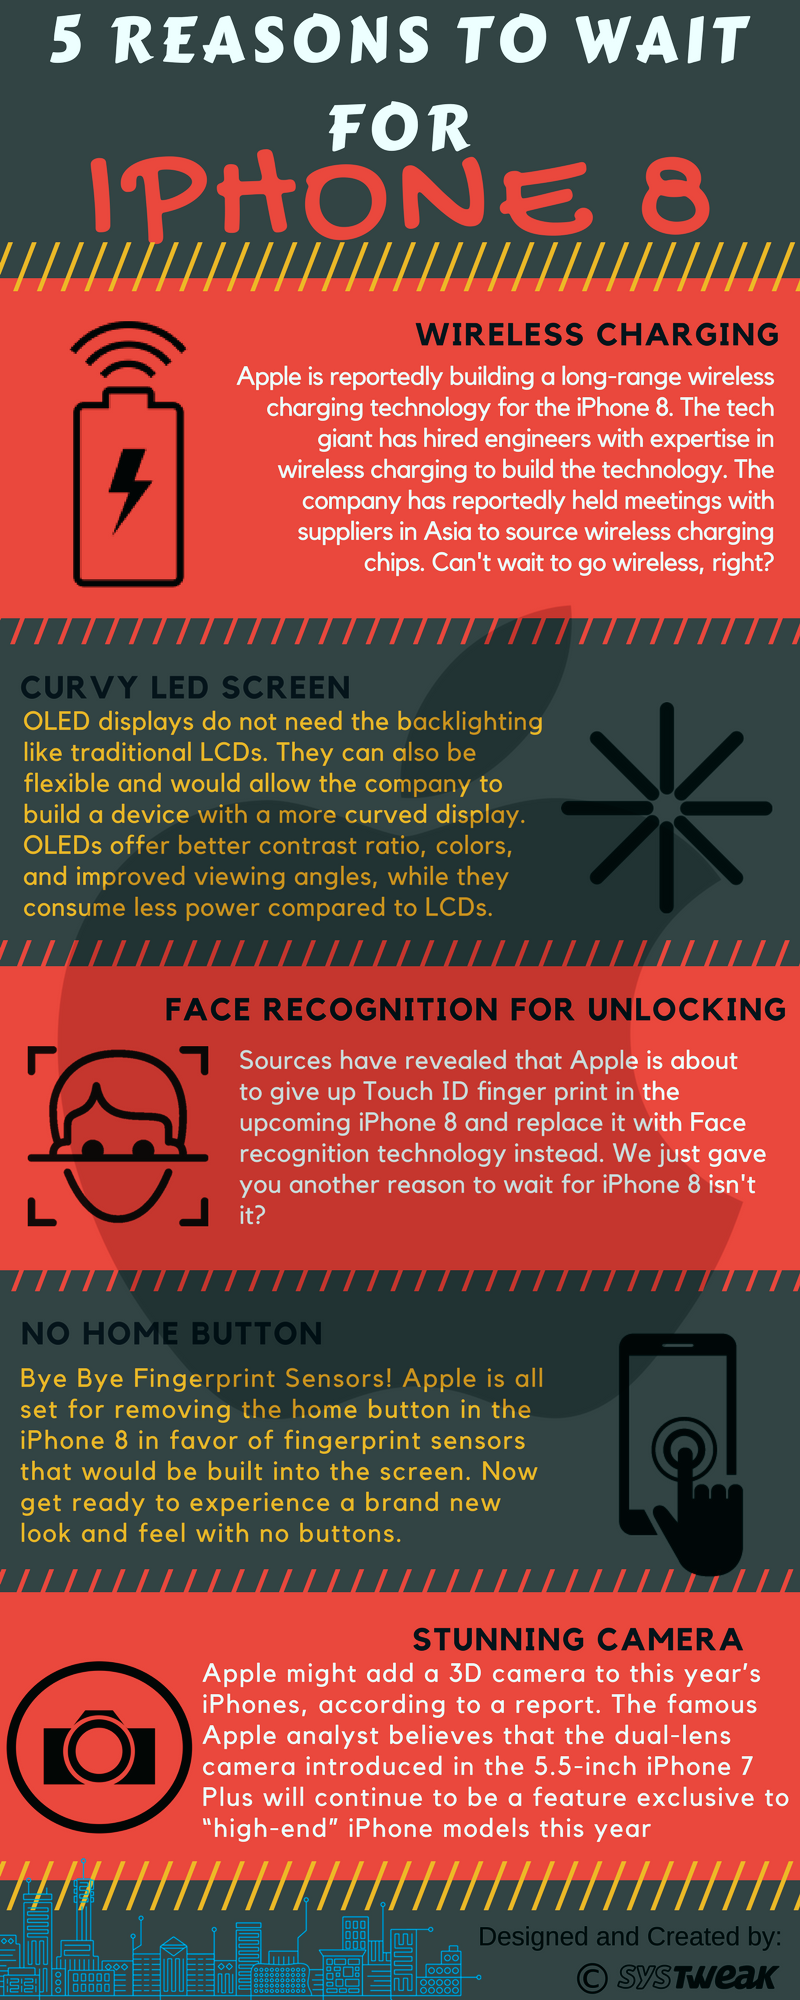 5 Good Reasons You Should Wait To Buy iPhone 8 - Infographic